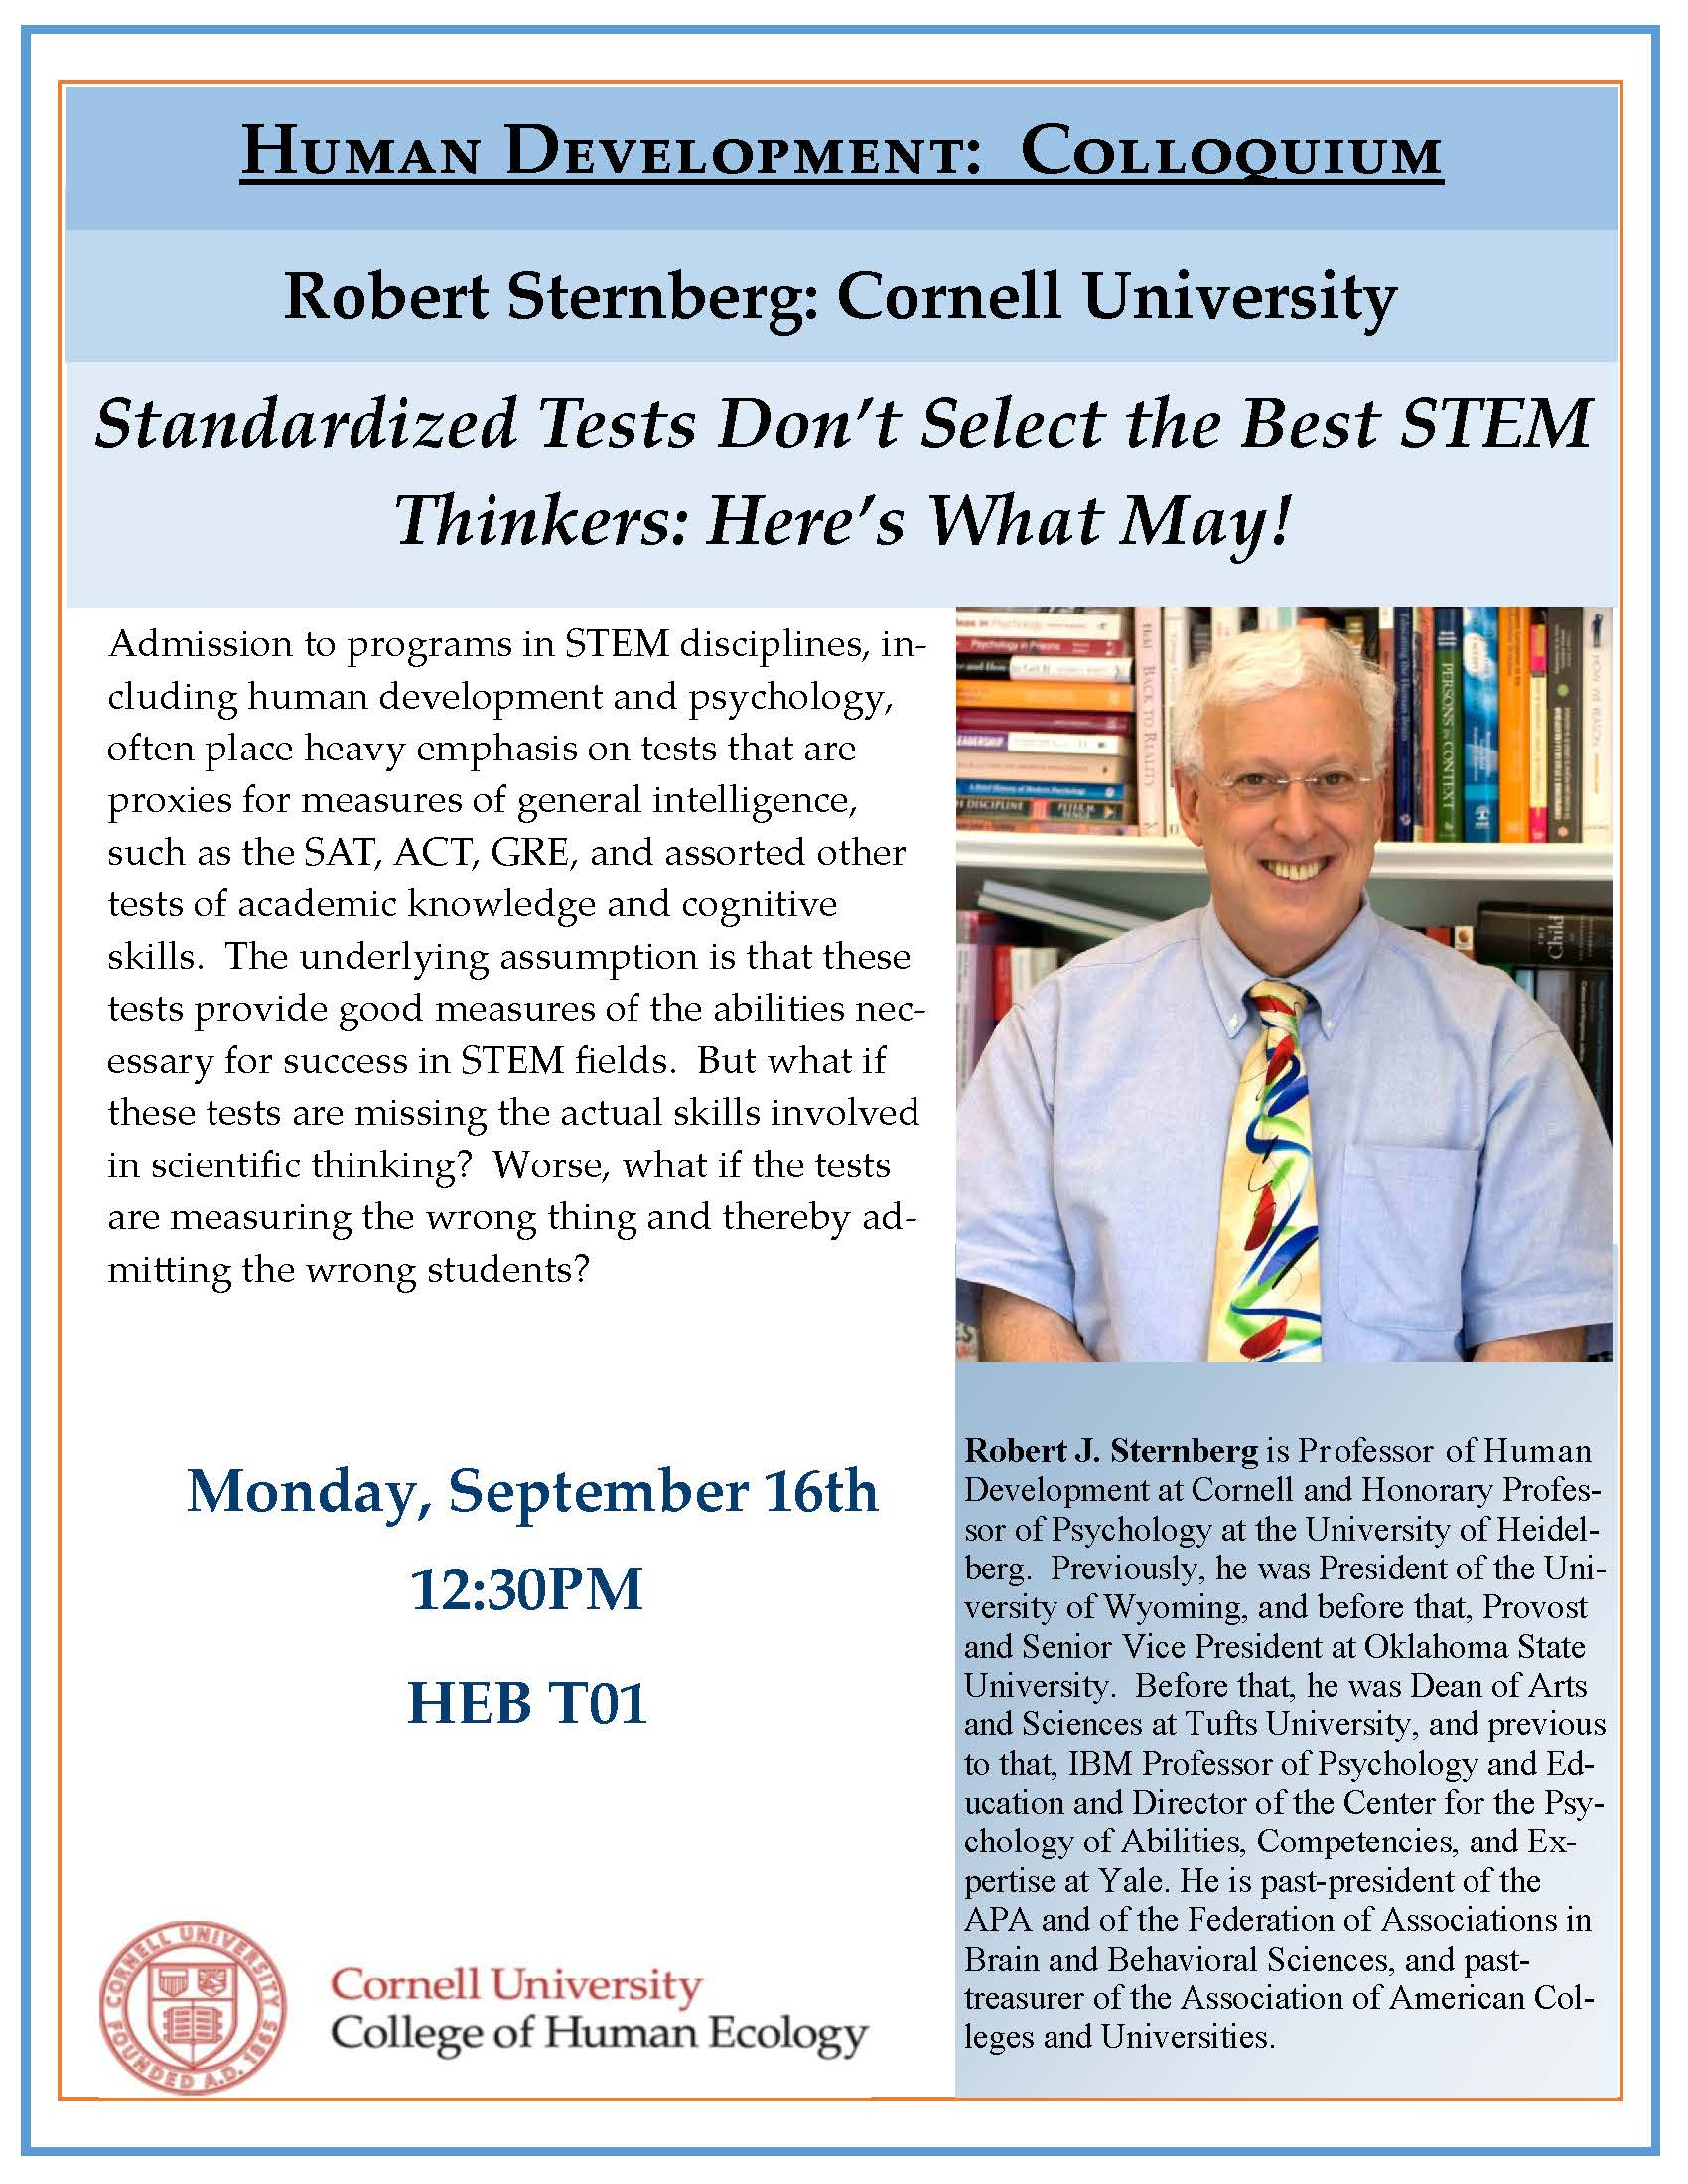 Robert Sternberg - Standardized Tests Don't Select the Best STEM Thinkers: Here's What May!